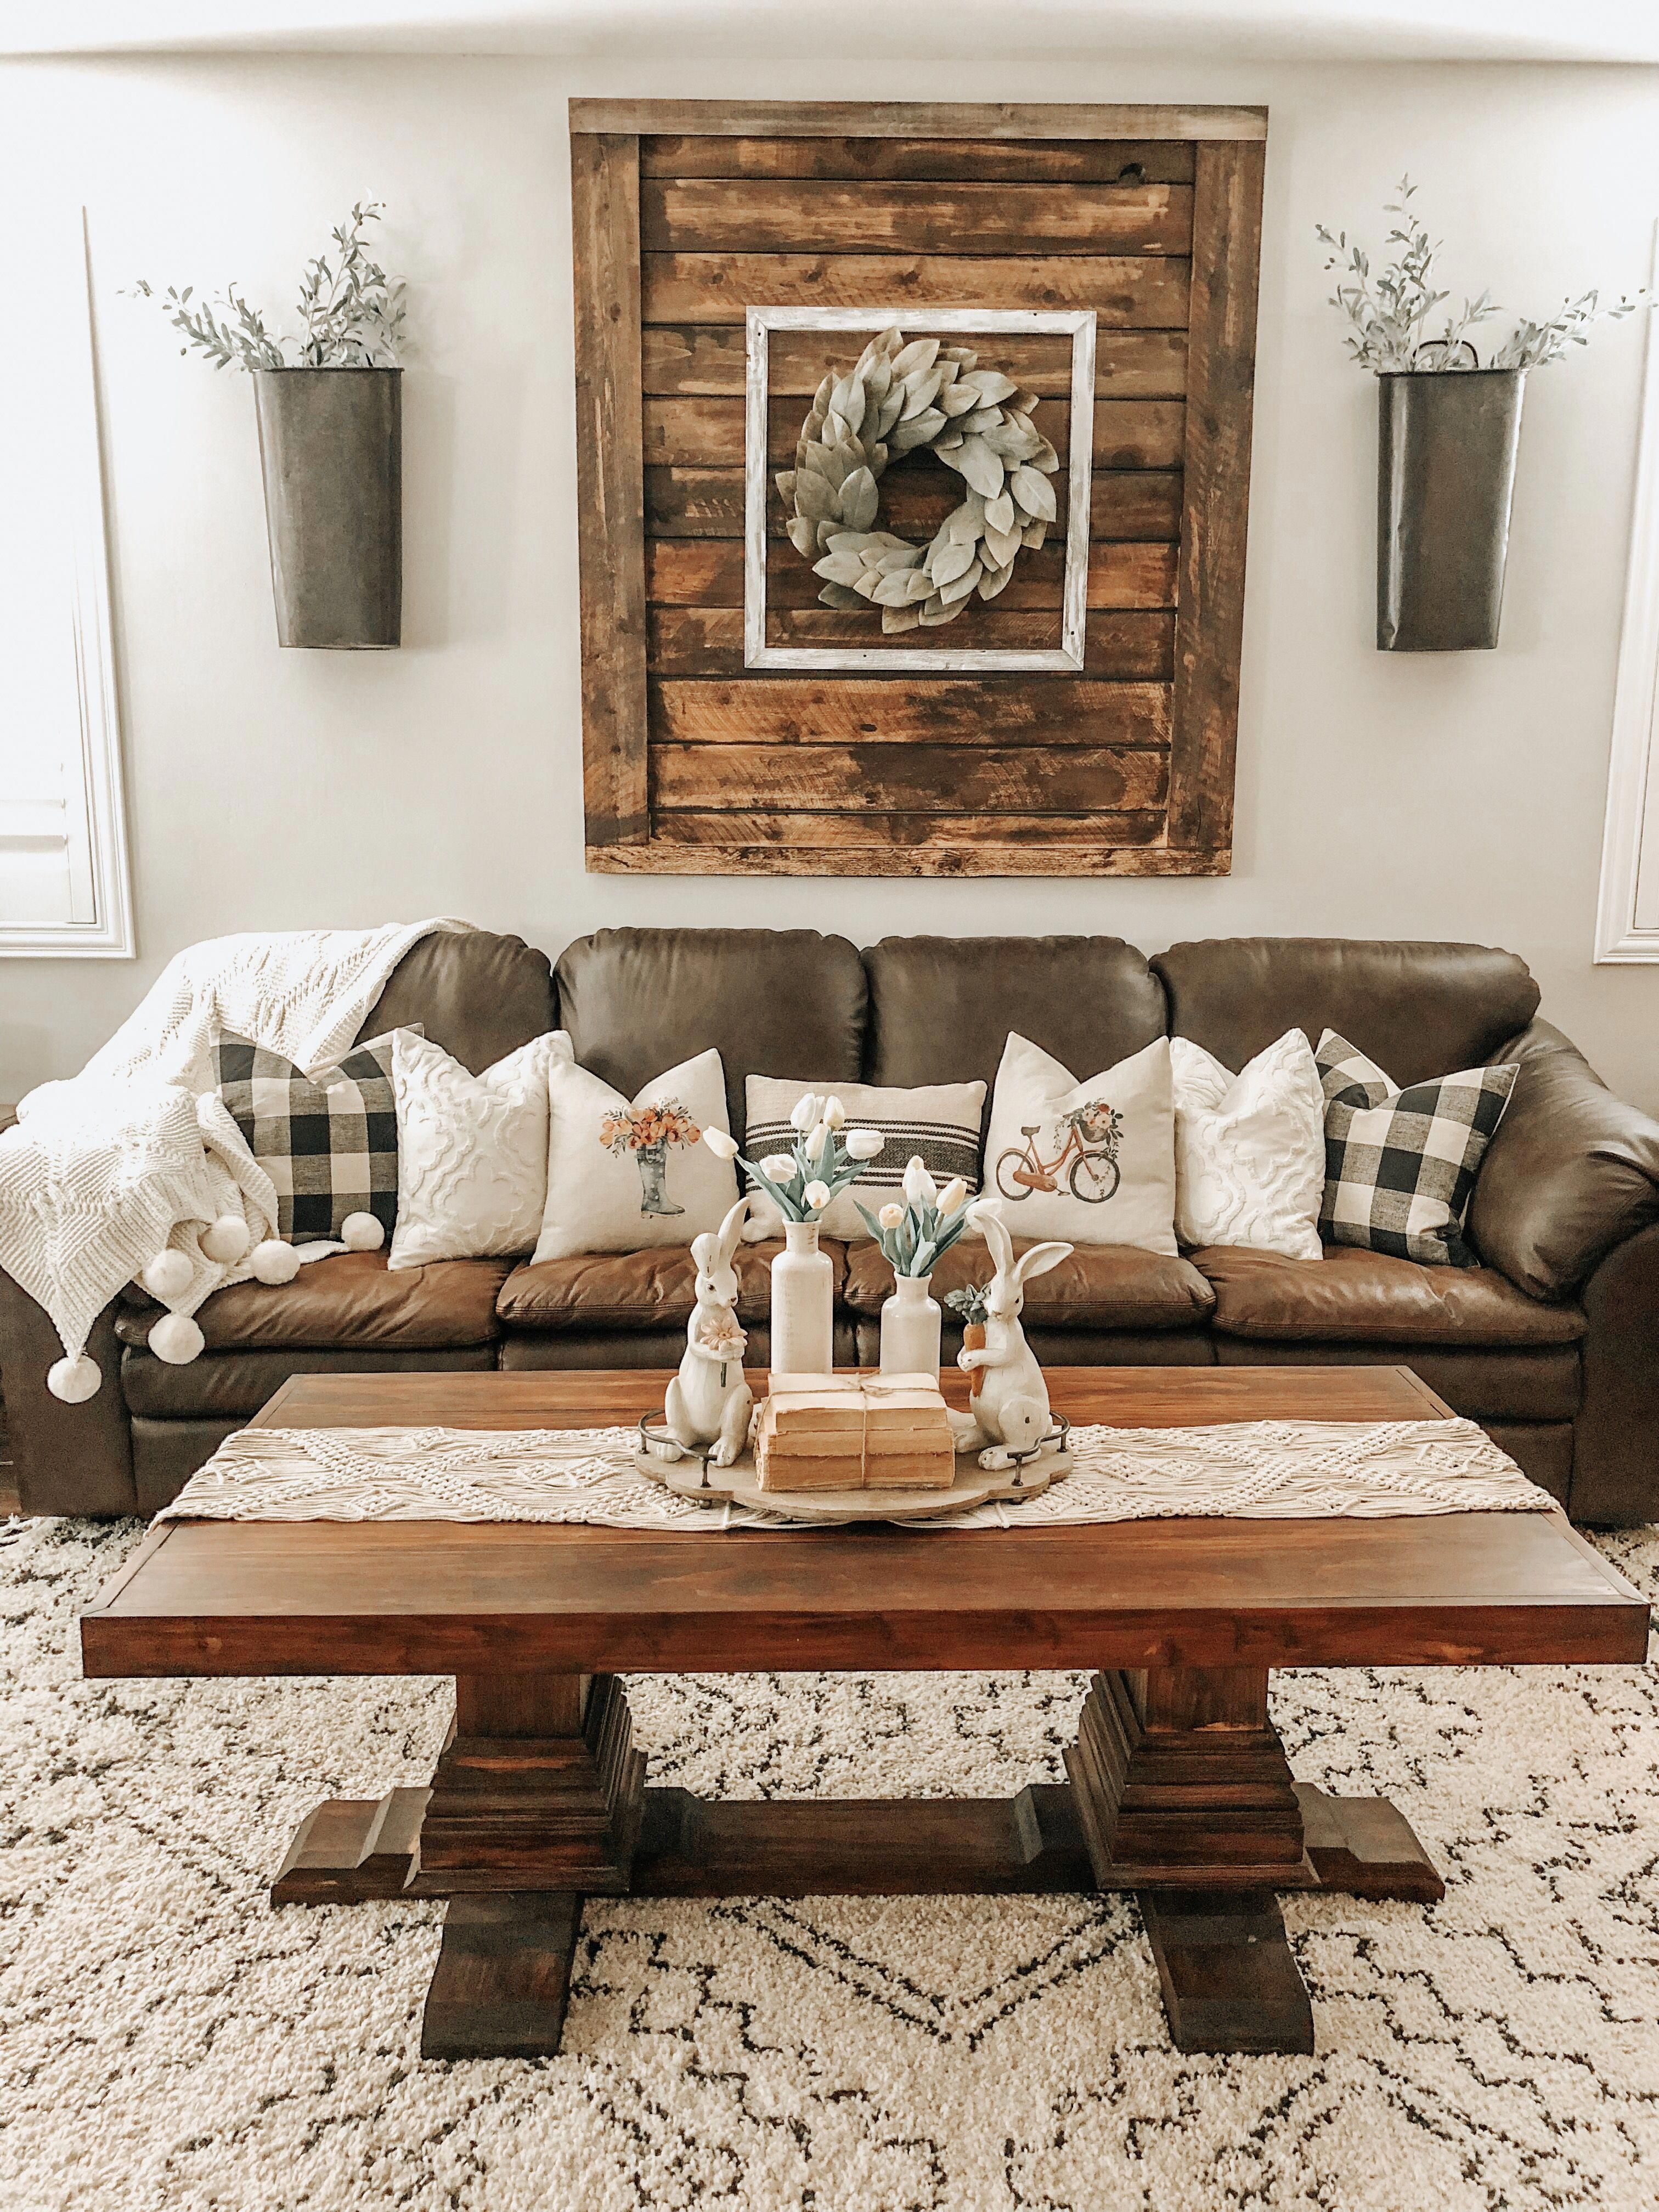 Pin by Kendra Asbrock on Living space (2020) Farmhouse